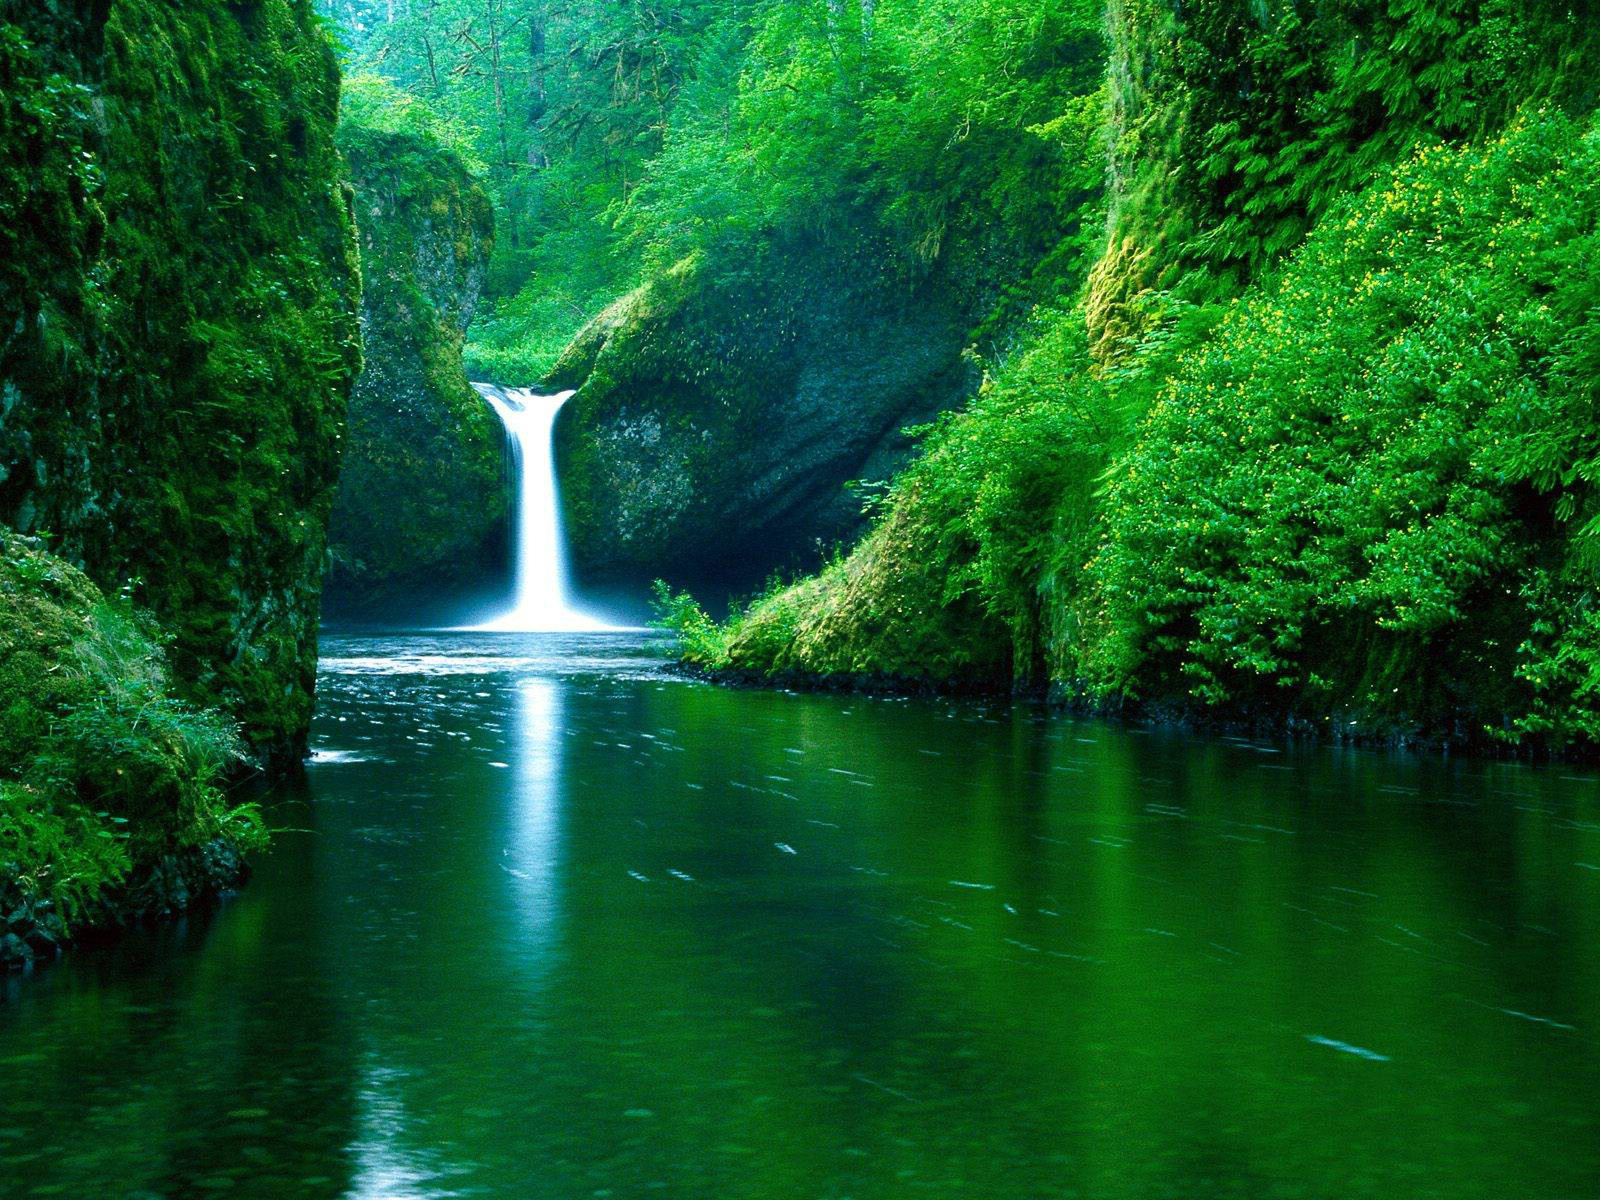 New Hd Wallpapers Free Download: Nature Hd Pictures Background New 2013 Free Download